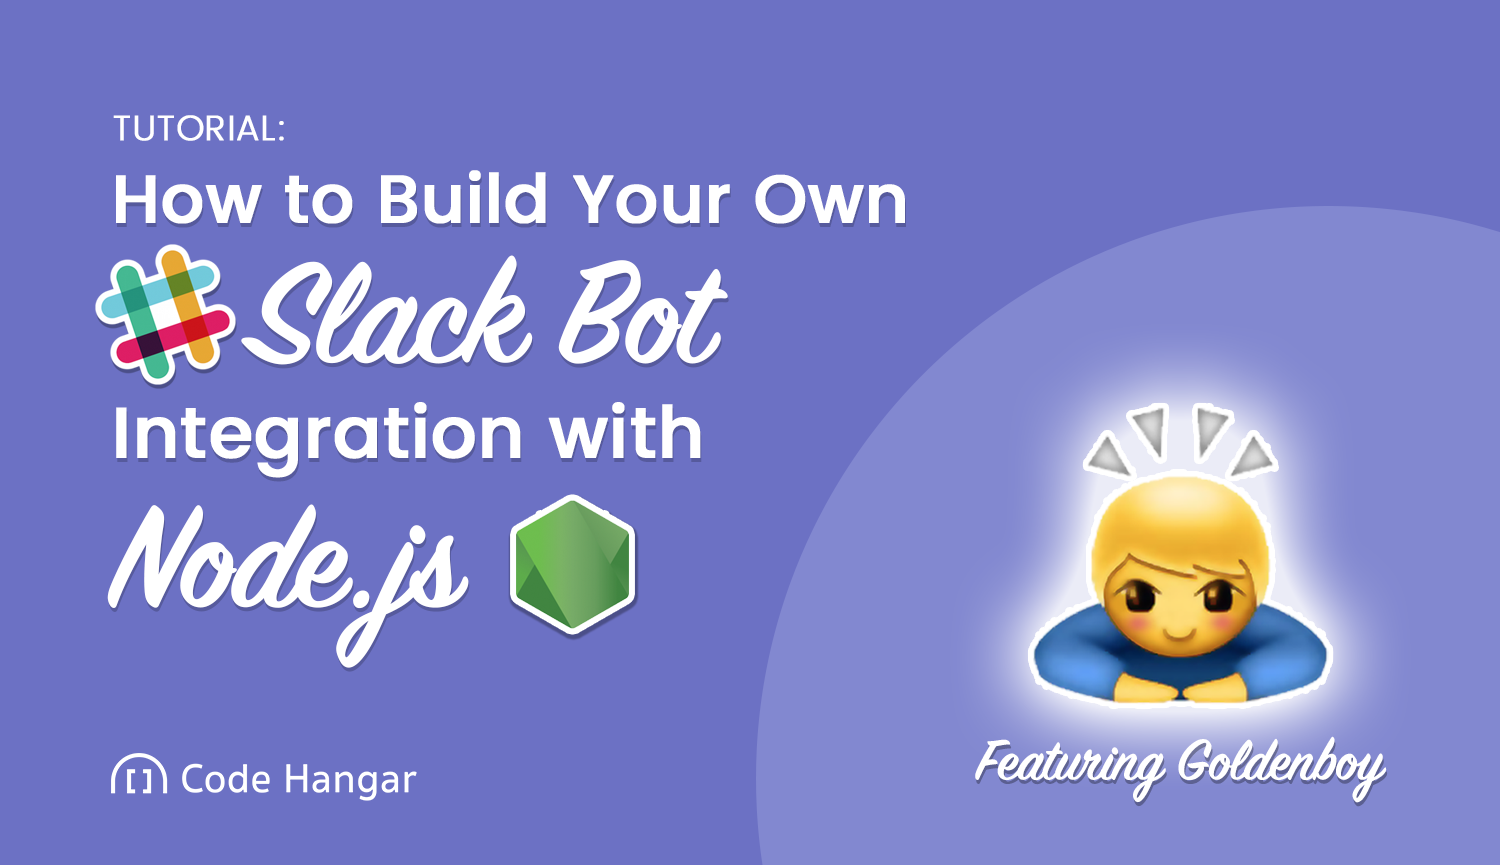 How to Build Your Own Slack Bot Integration with Node.js